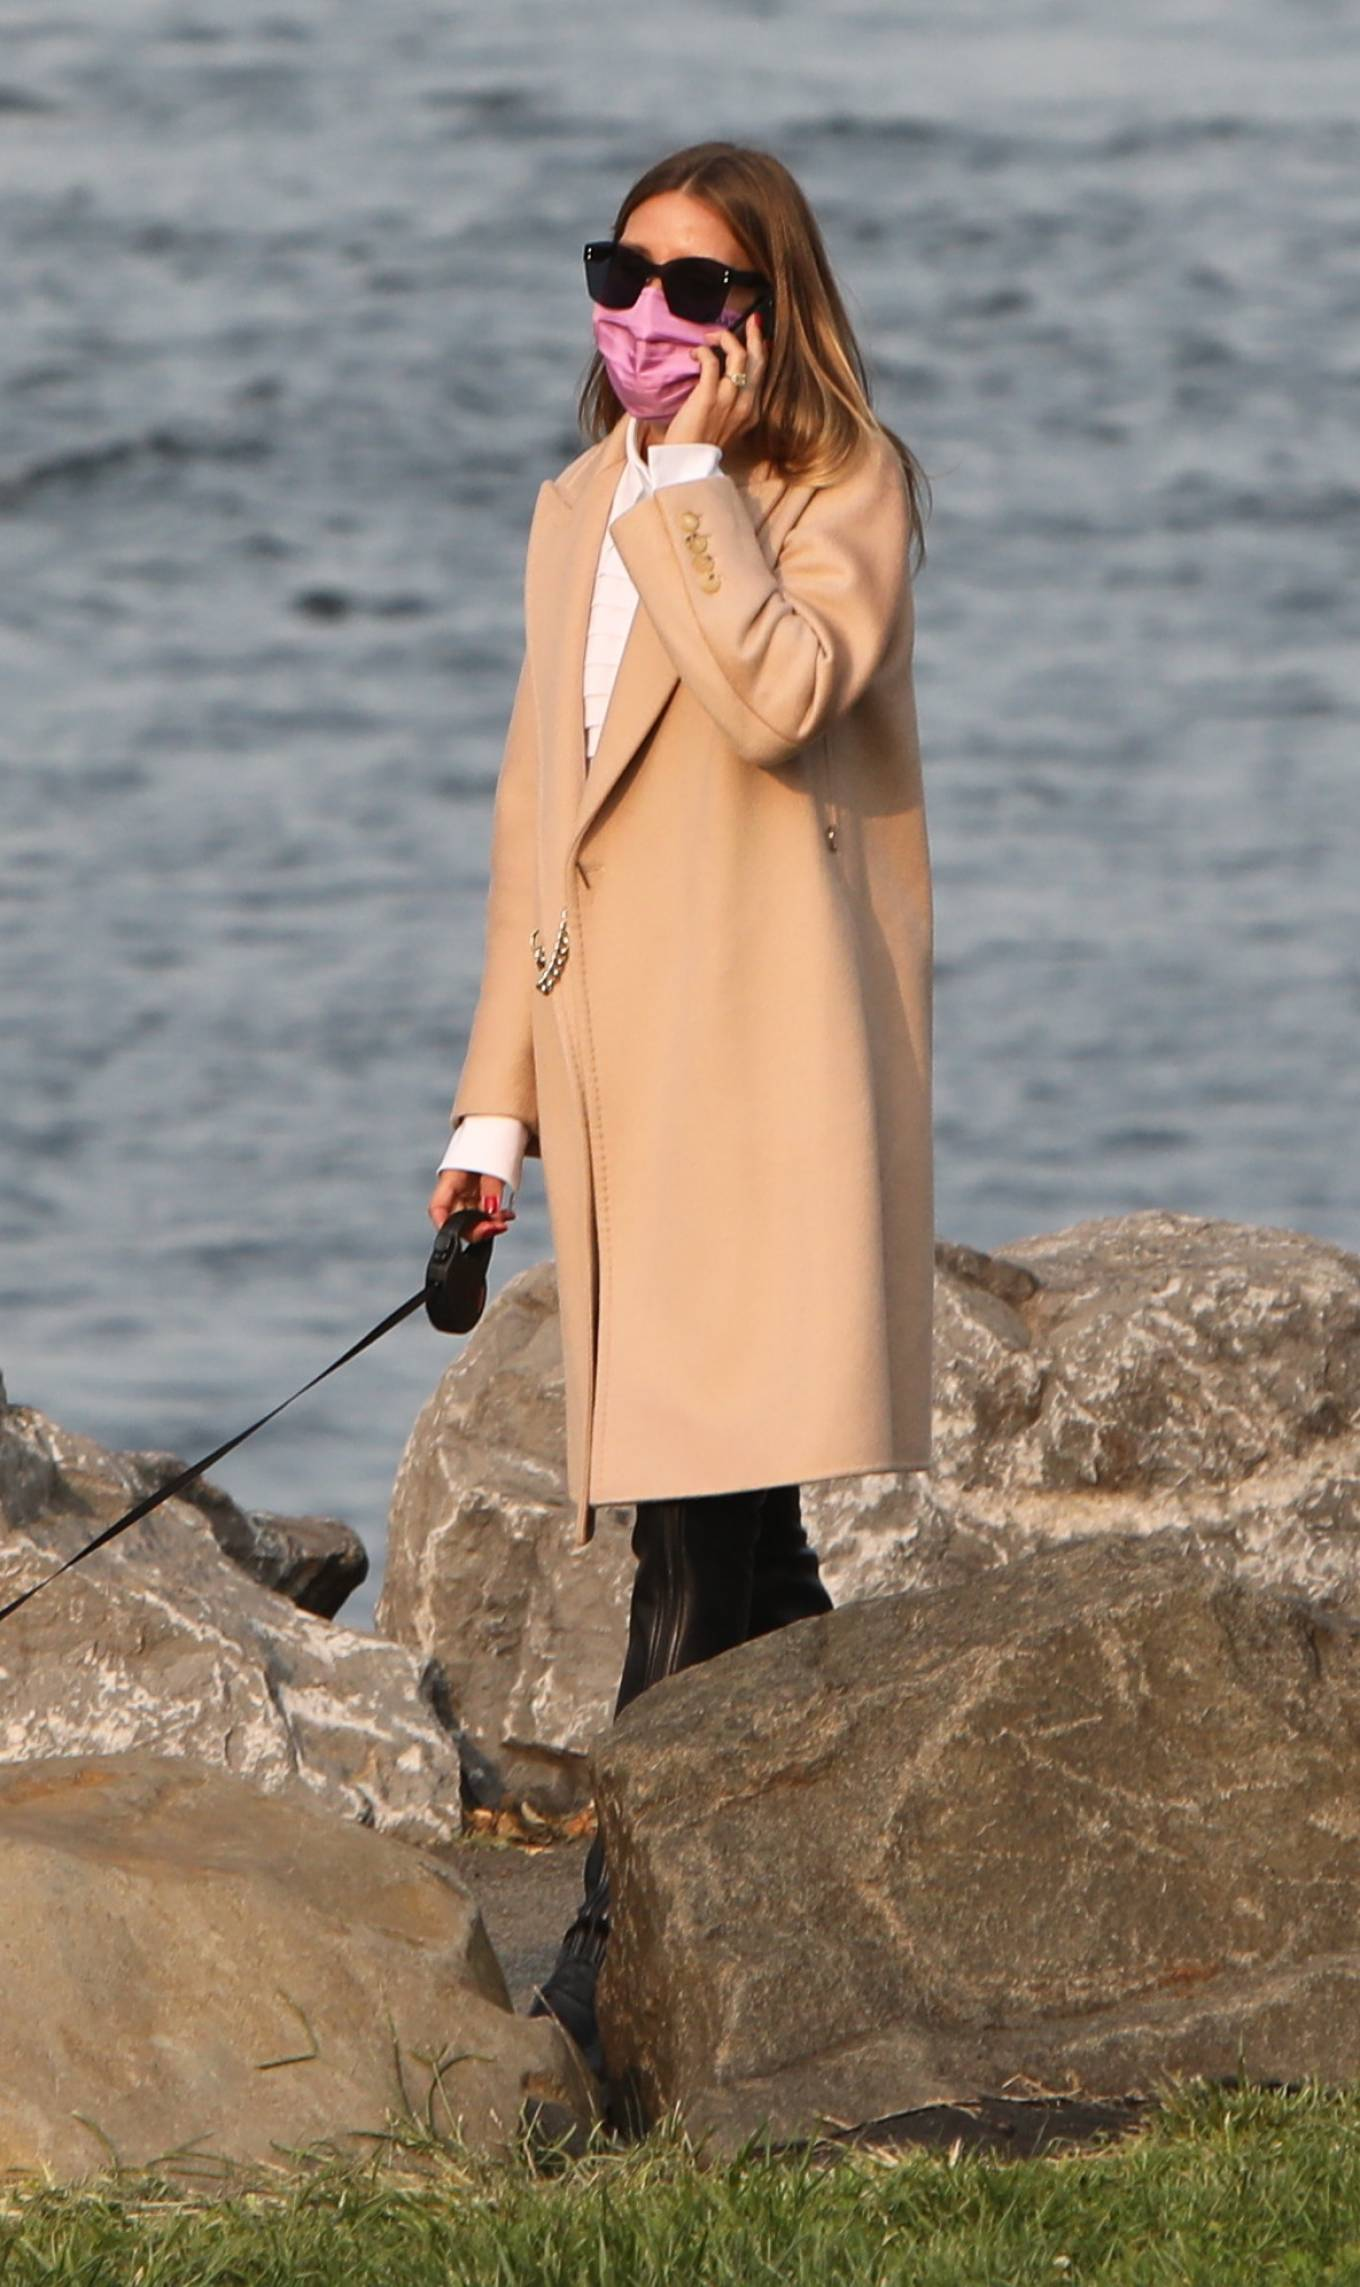 Olivia Palermo 2020 : Olivia Palermo – Wearing a white short dress under a coat while out for a walk in Manhattan-18